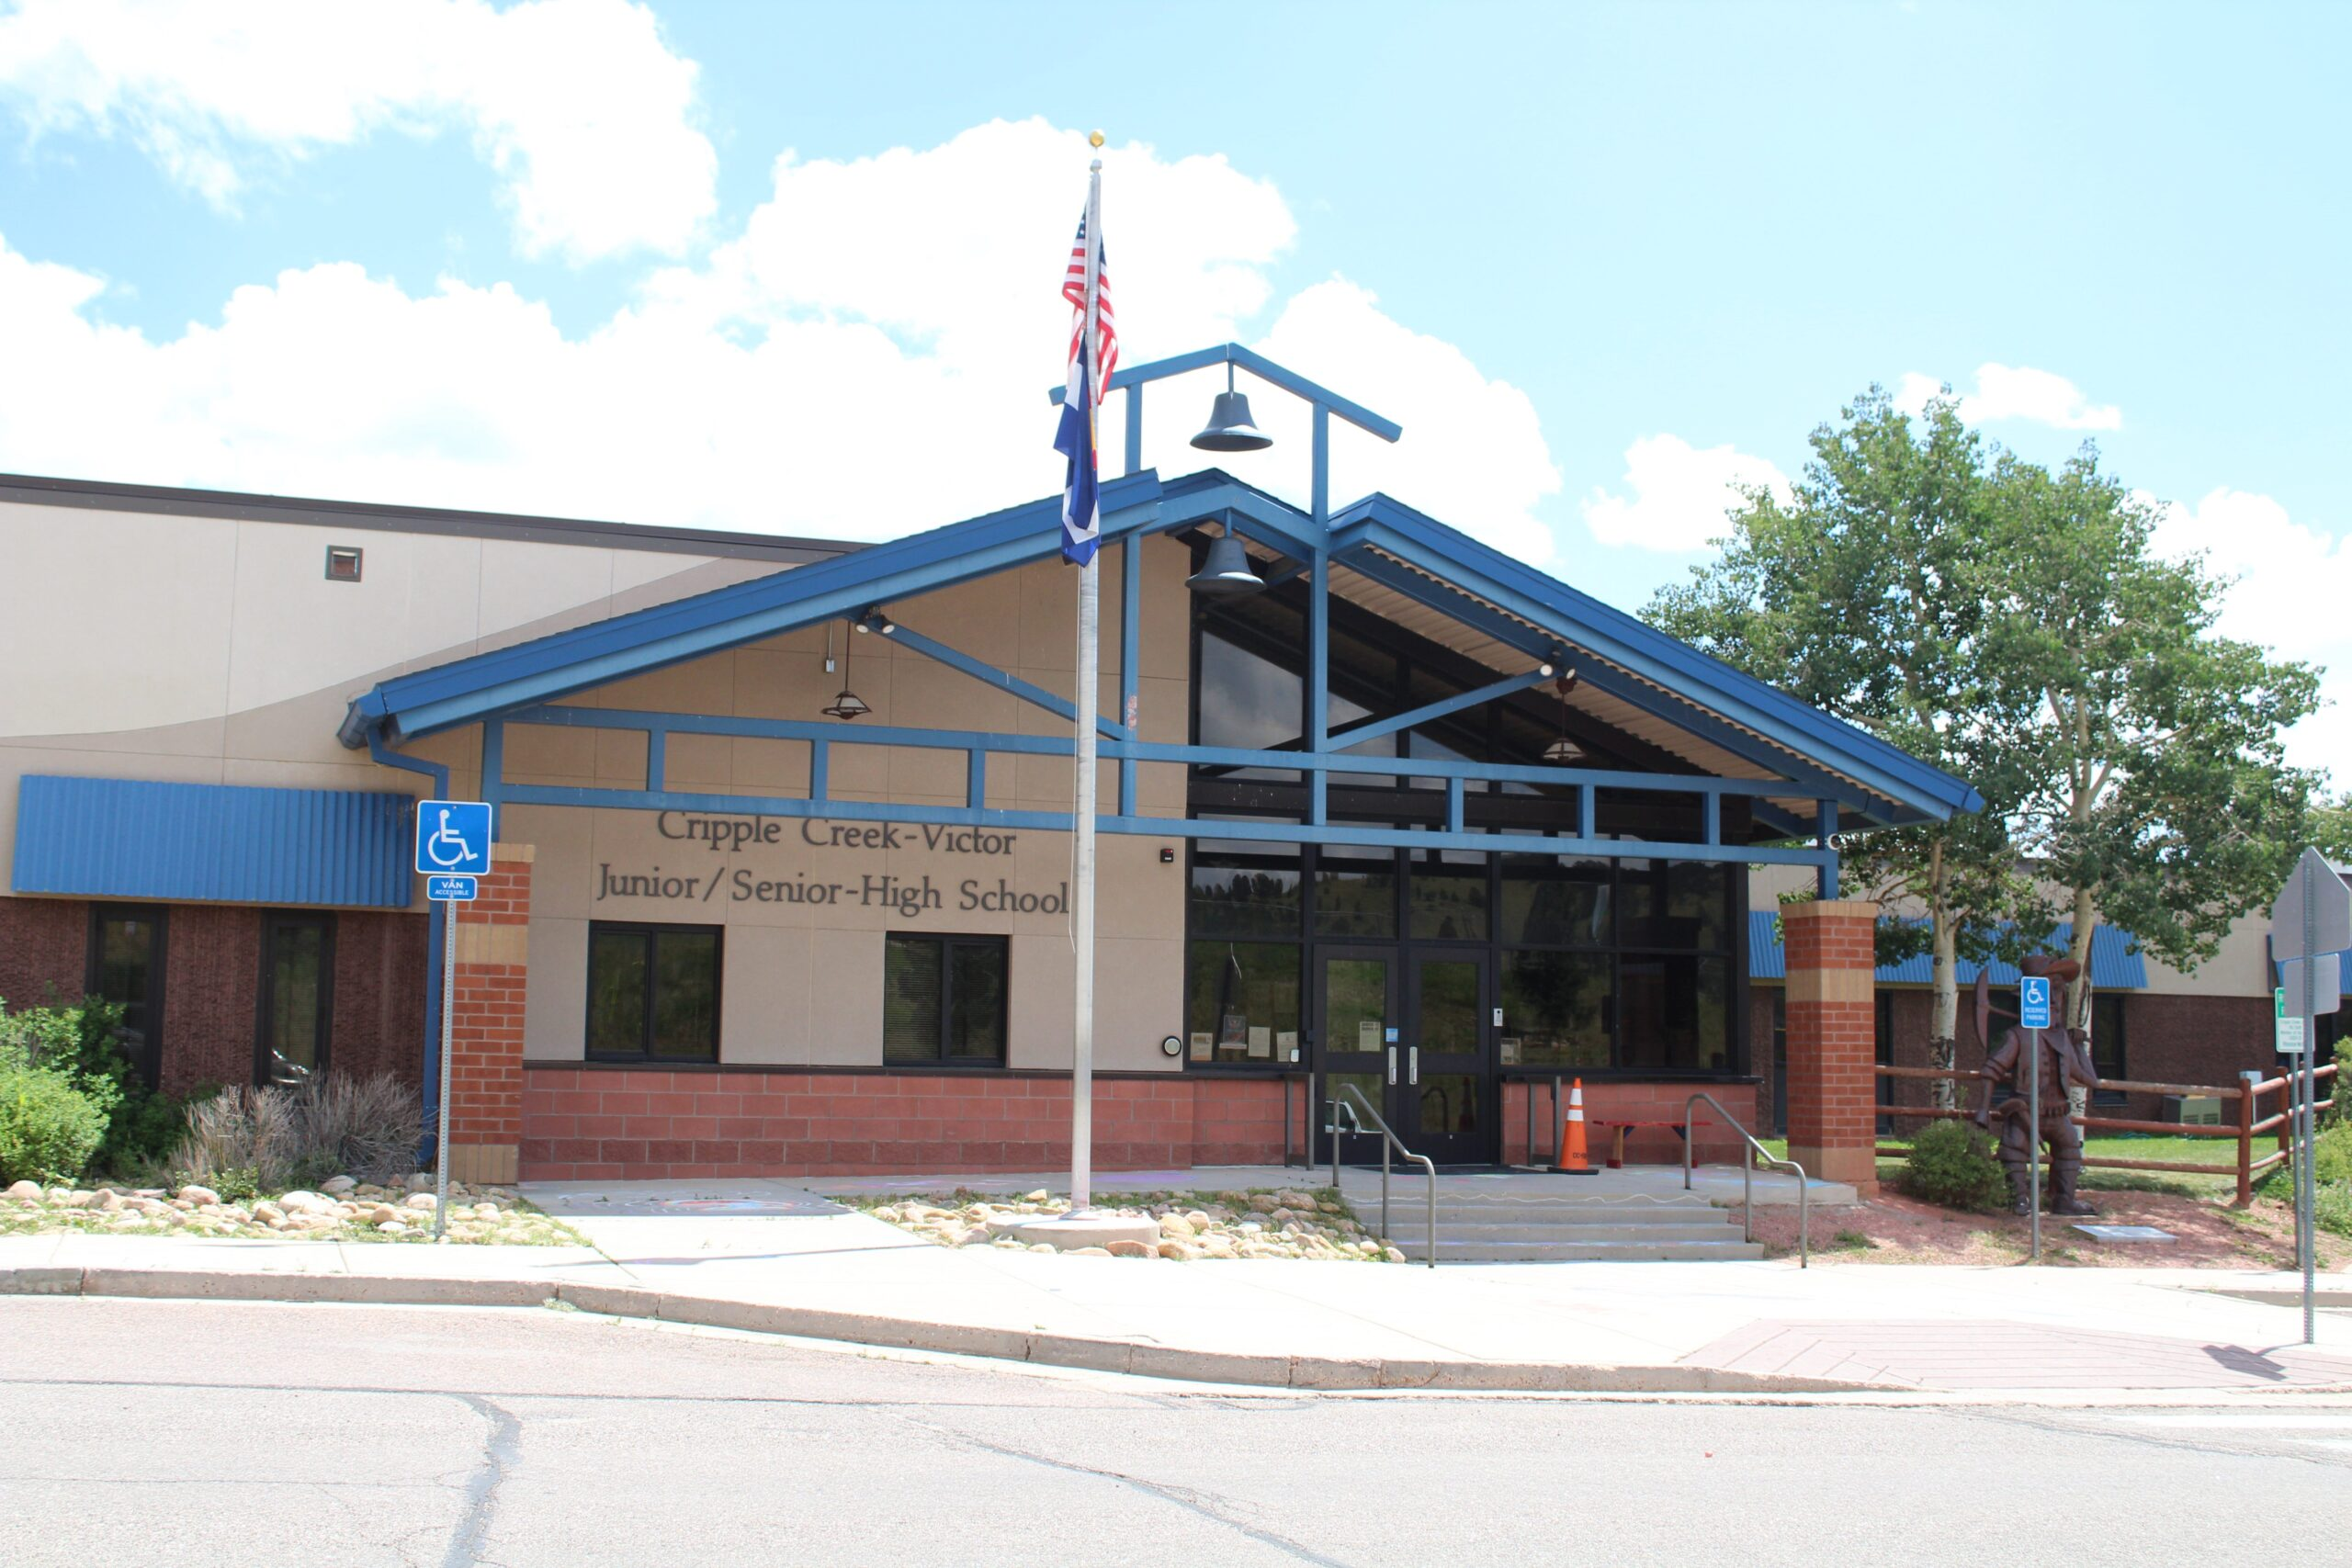 Using money from a RISE Grant, students at Cripple Creek-Victor Junior/Senior High School will have the option to study culinary arts and hospitality, fire science and EMT training, or get on-the-job skills and certifications from a construction trade program.